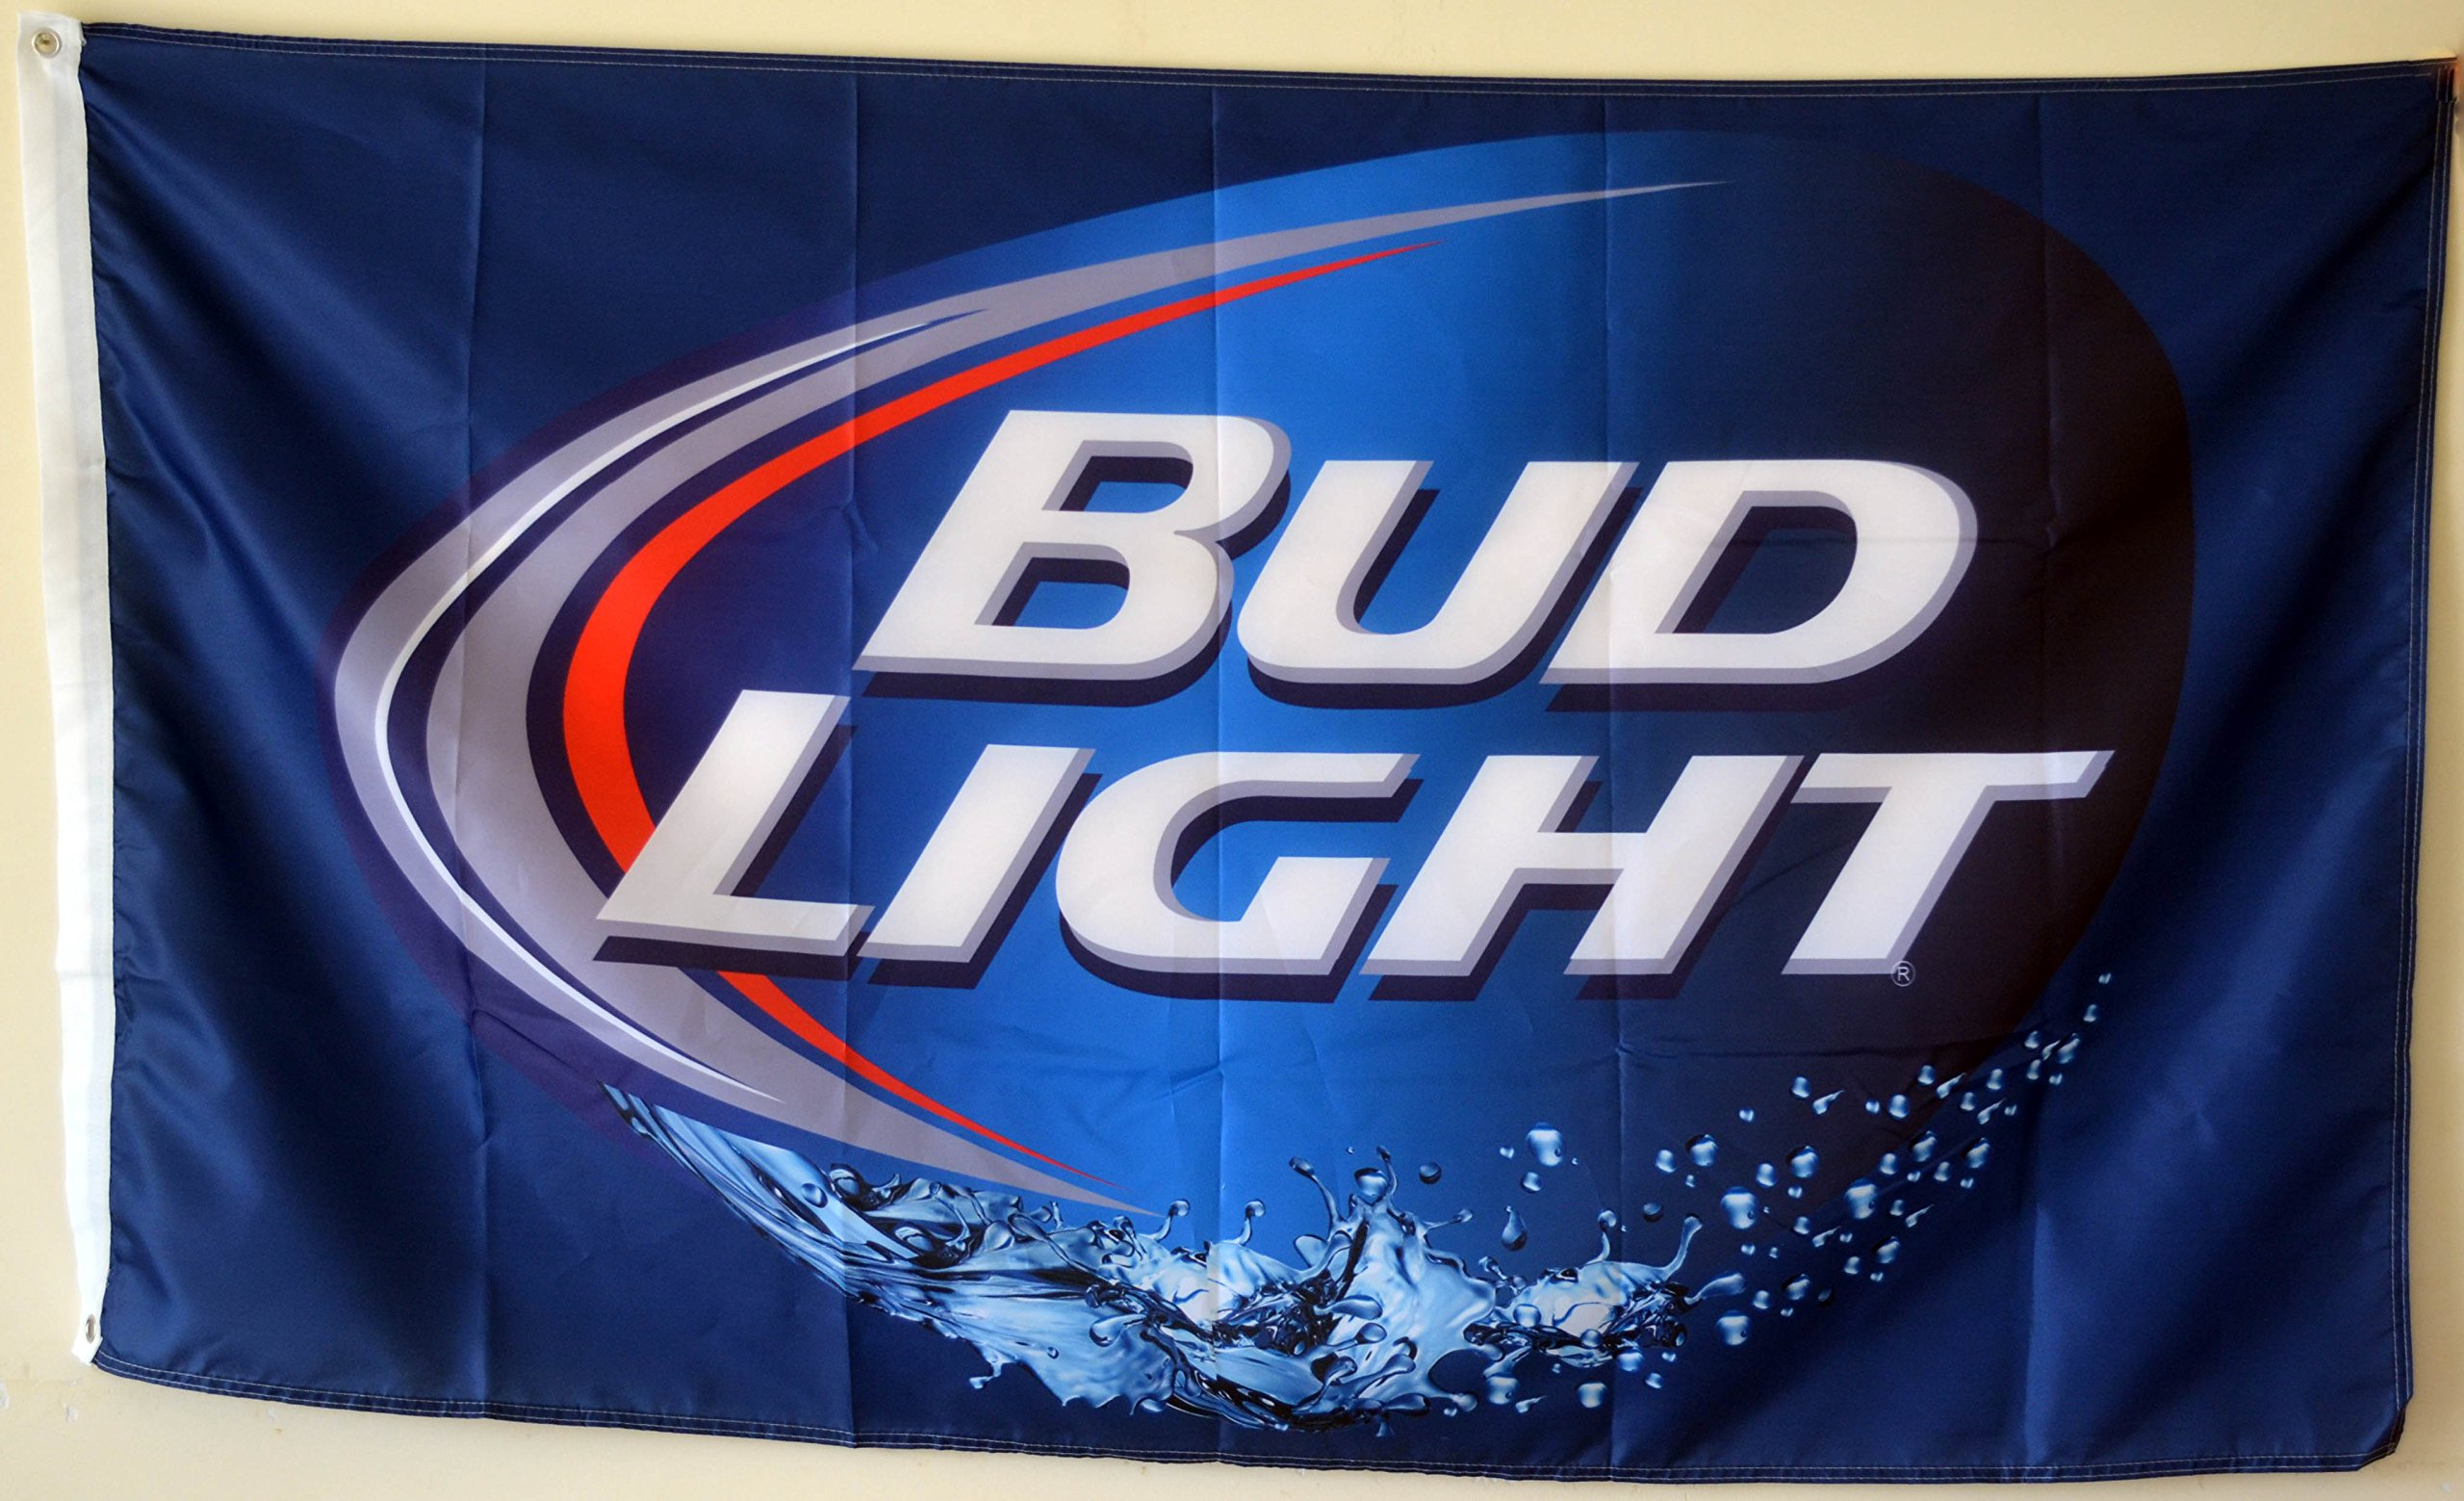 2But Budweiser Bud Light Beer Flag Banner 3x5 Feet Man Cave by 2But